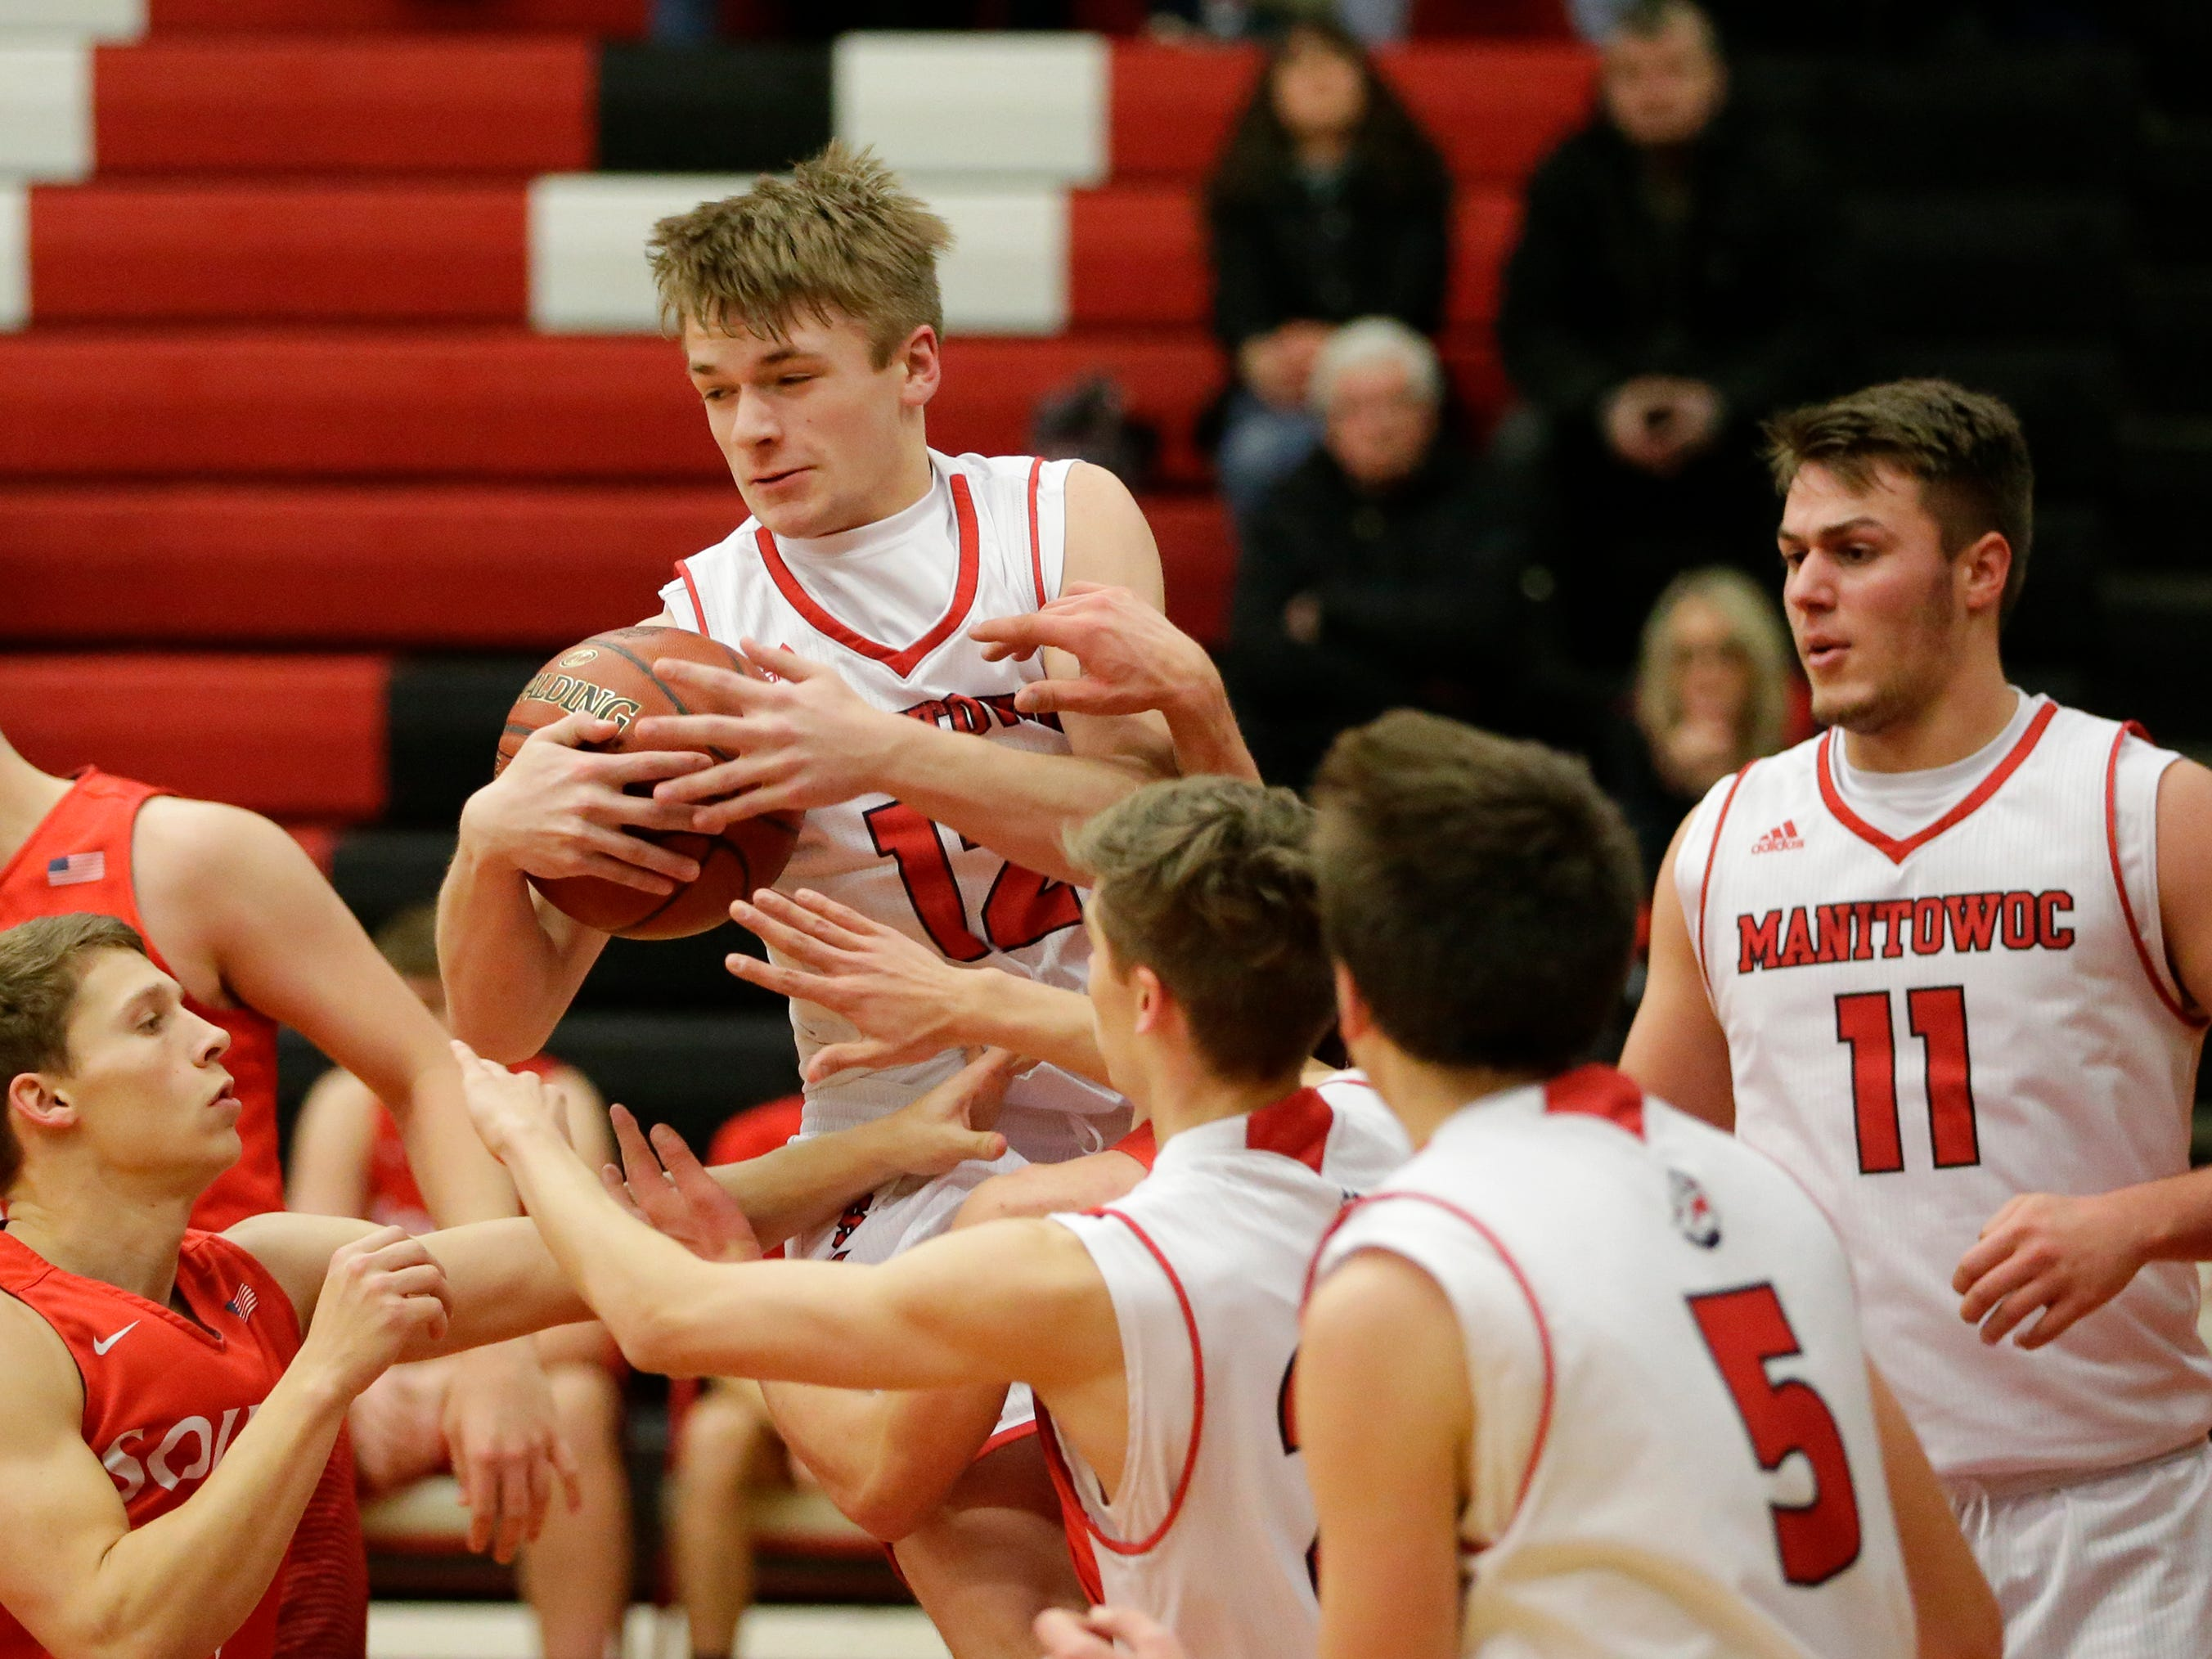 Manitowoc Lincoln's Gage Cornell (12) rebounds against Sheboygan South at Manitowoc Lincoln High School Tuesday, February 5, 2019, in Manitowoc, Wis. Joshua Clark/USA TODAY NETWORK-Wisconsin